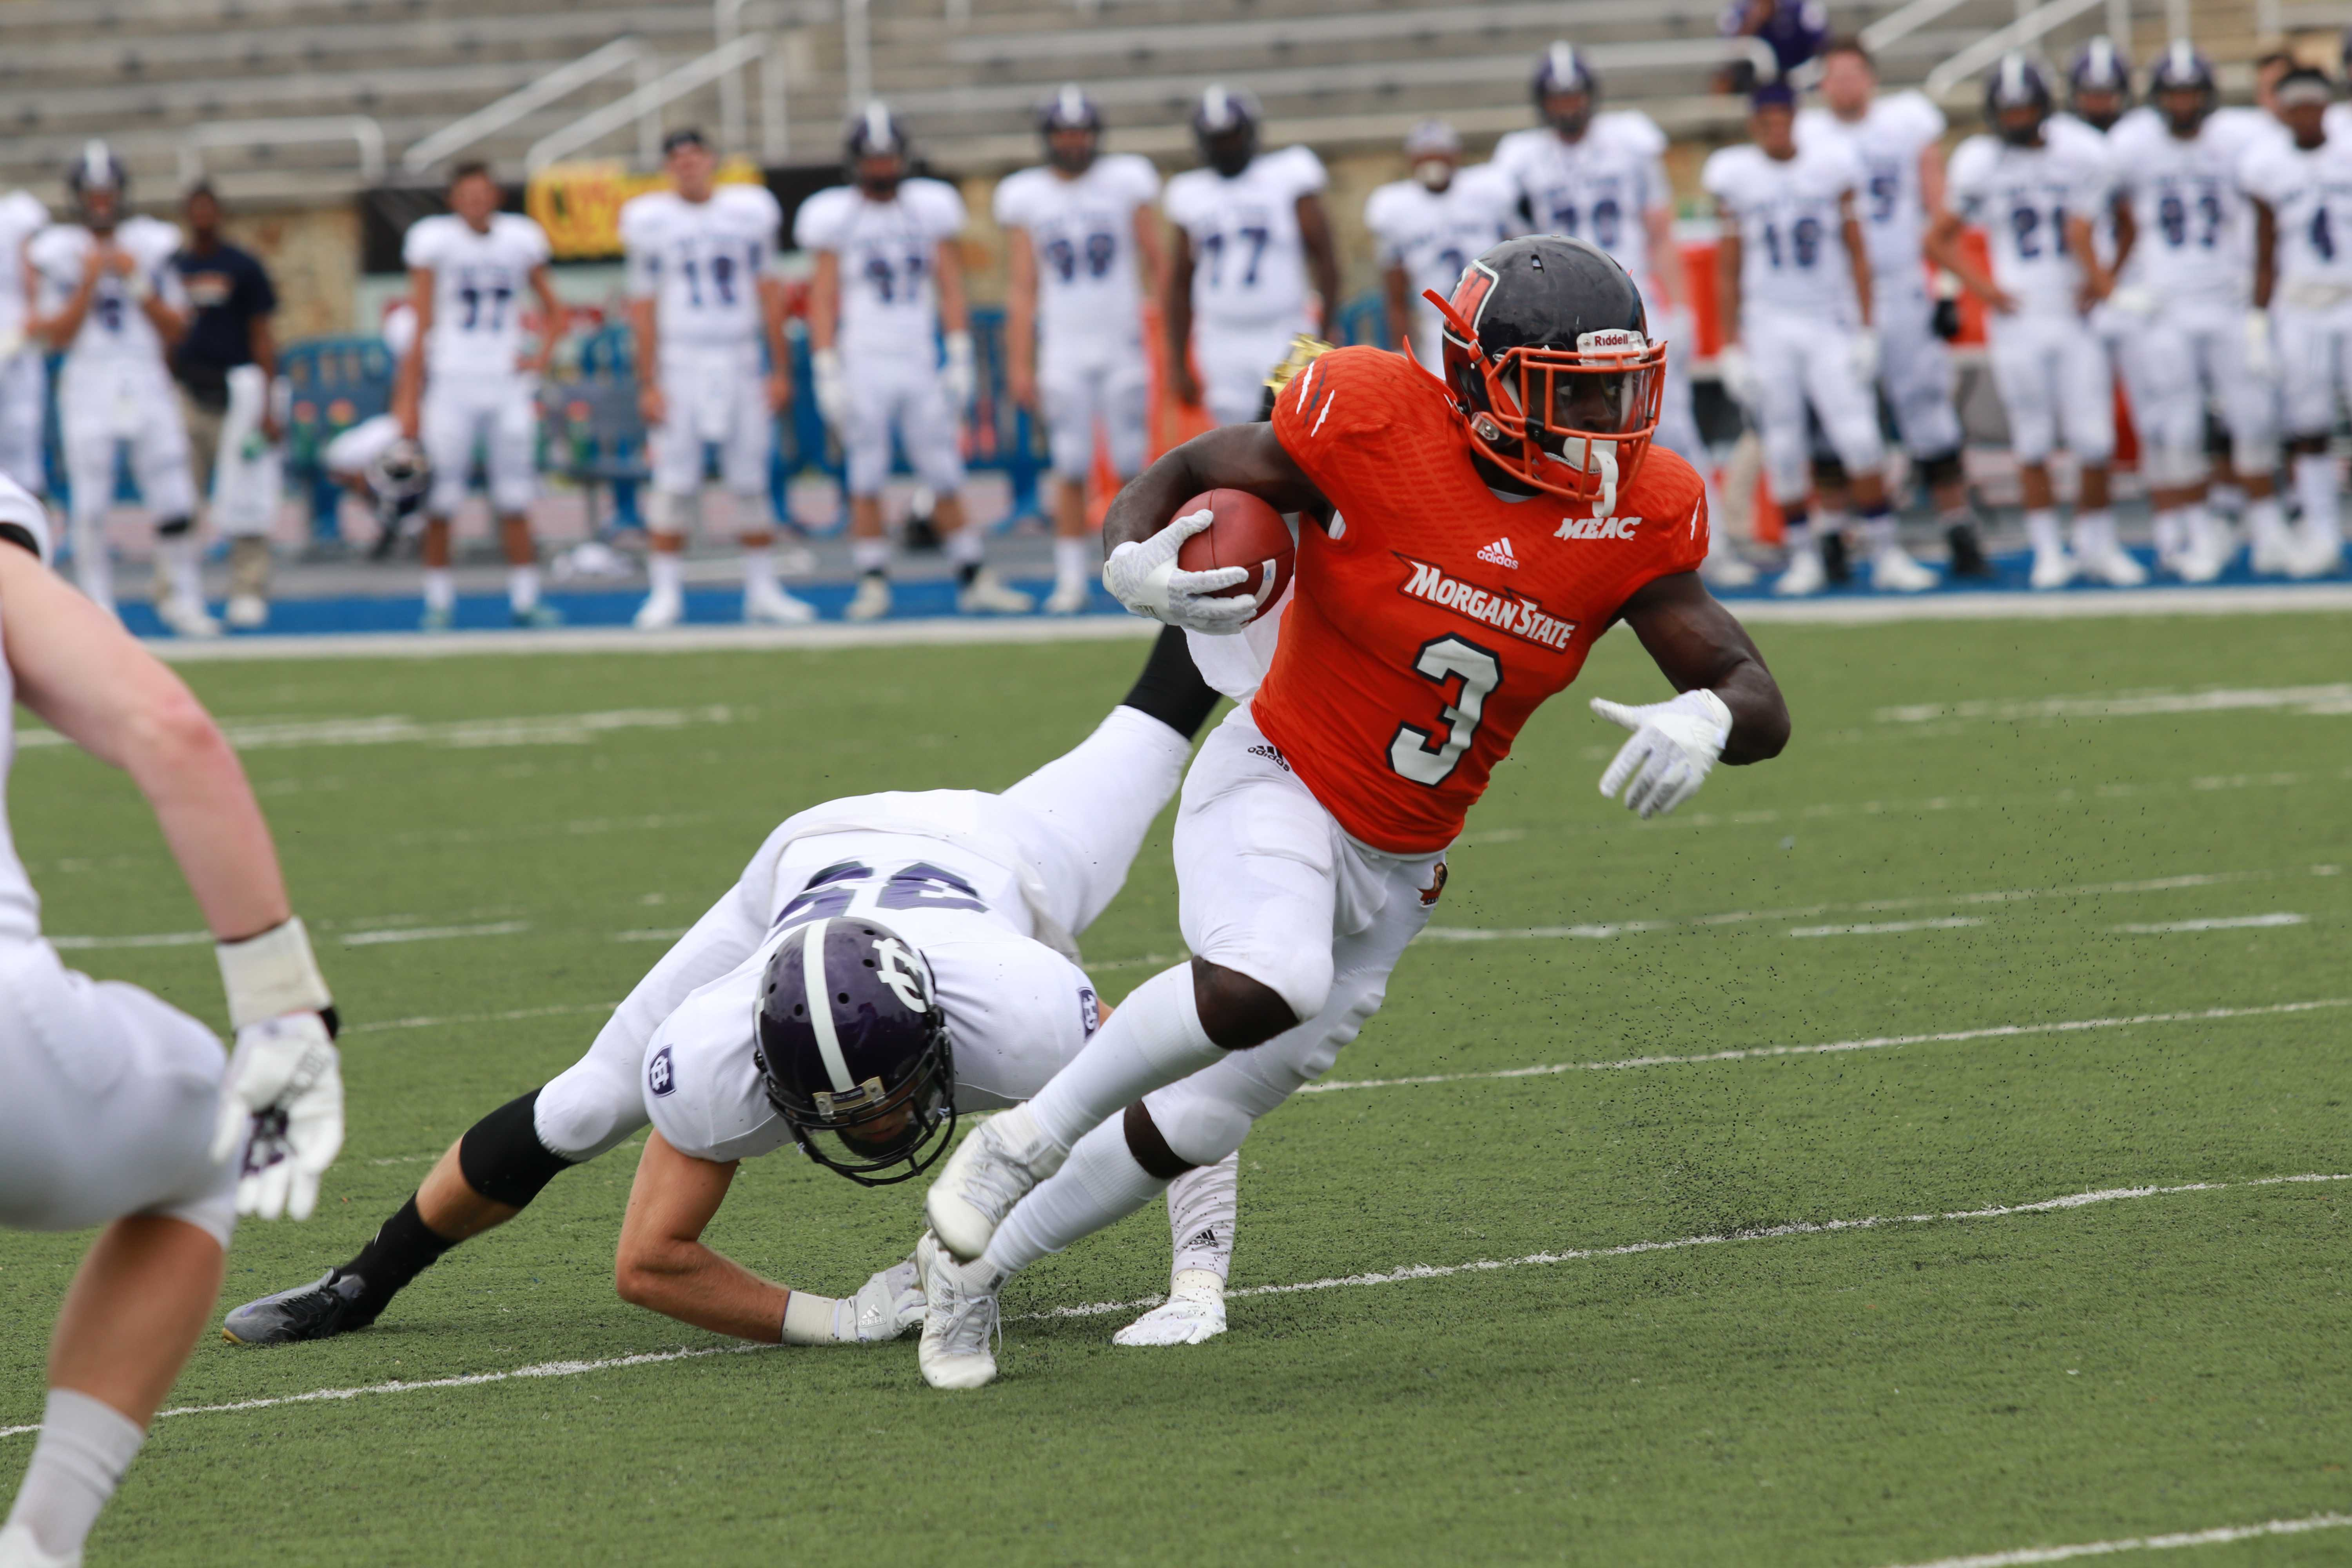 Herb Walker avoids Holy Cross tackler. Photo by Terry Wright.